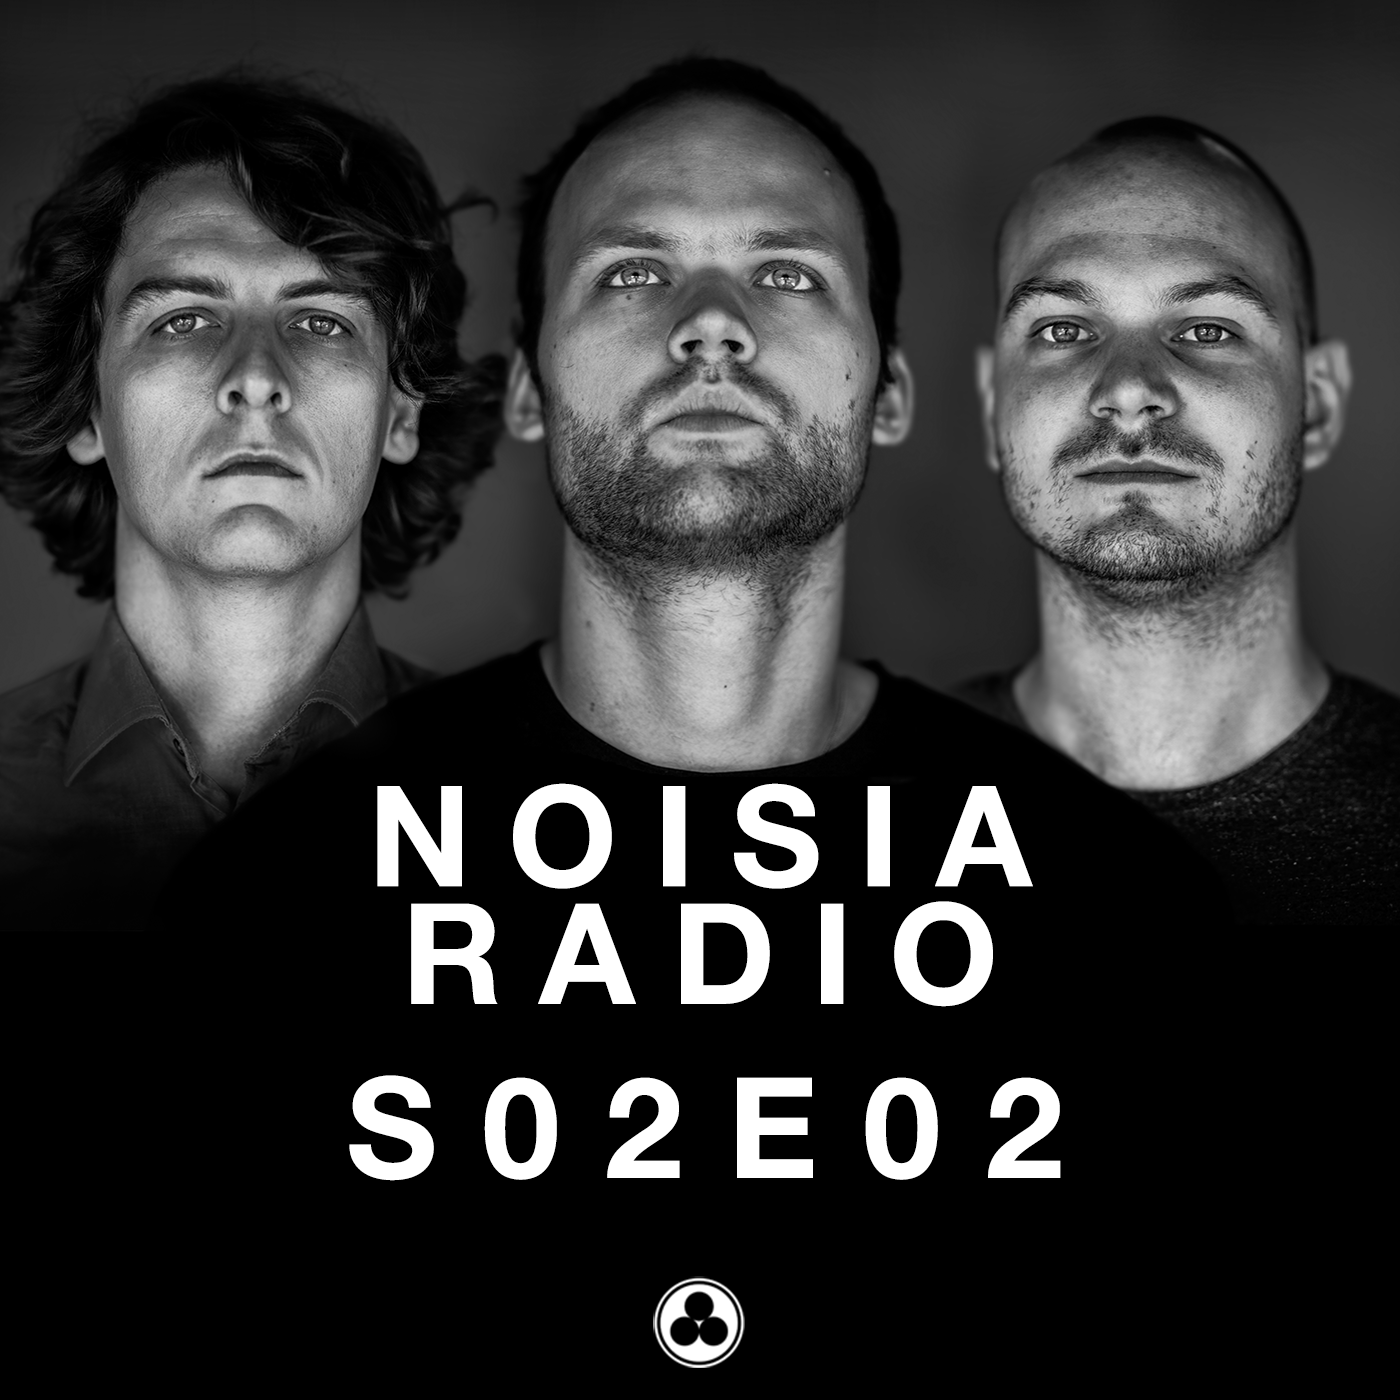 Noisia Radio S02E02